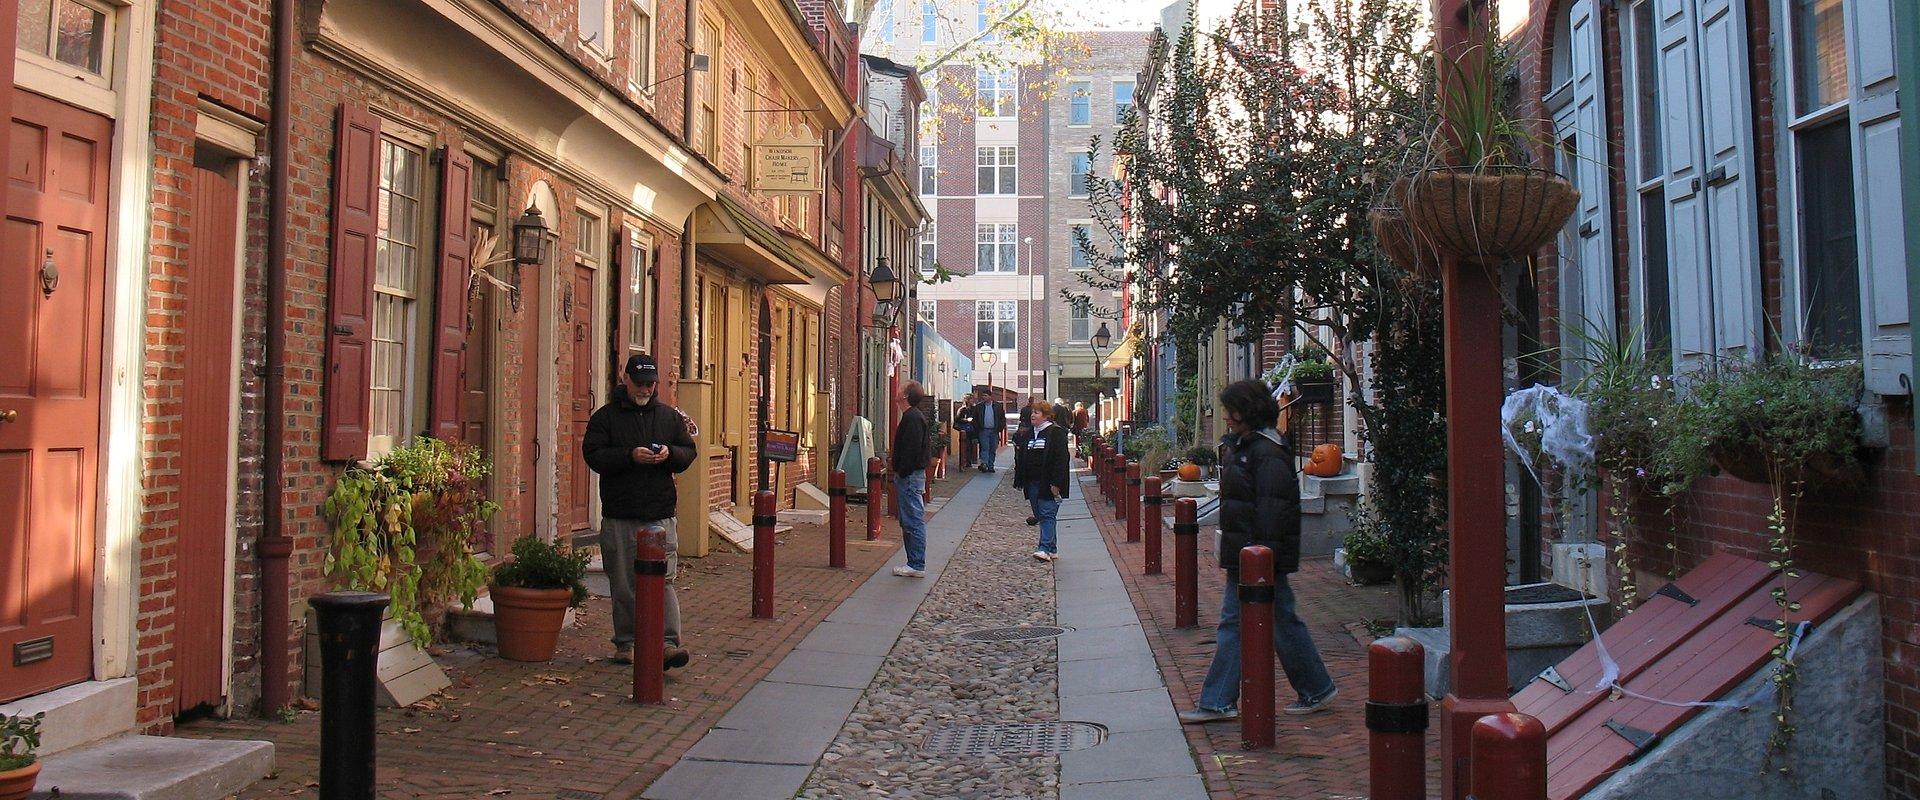 The American Alley